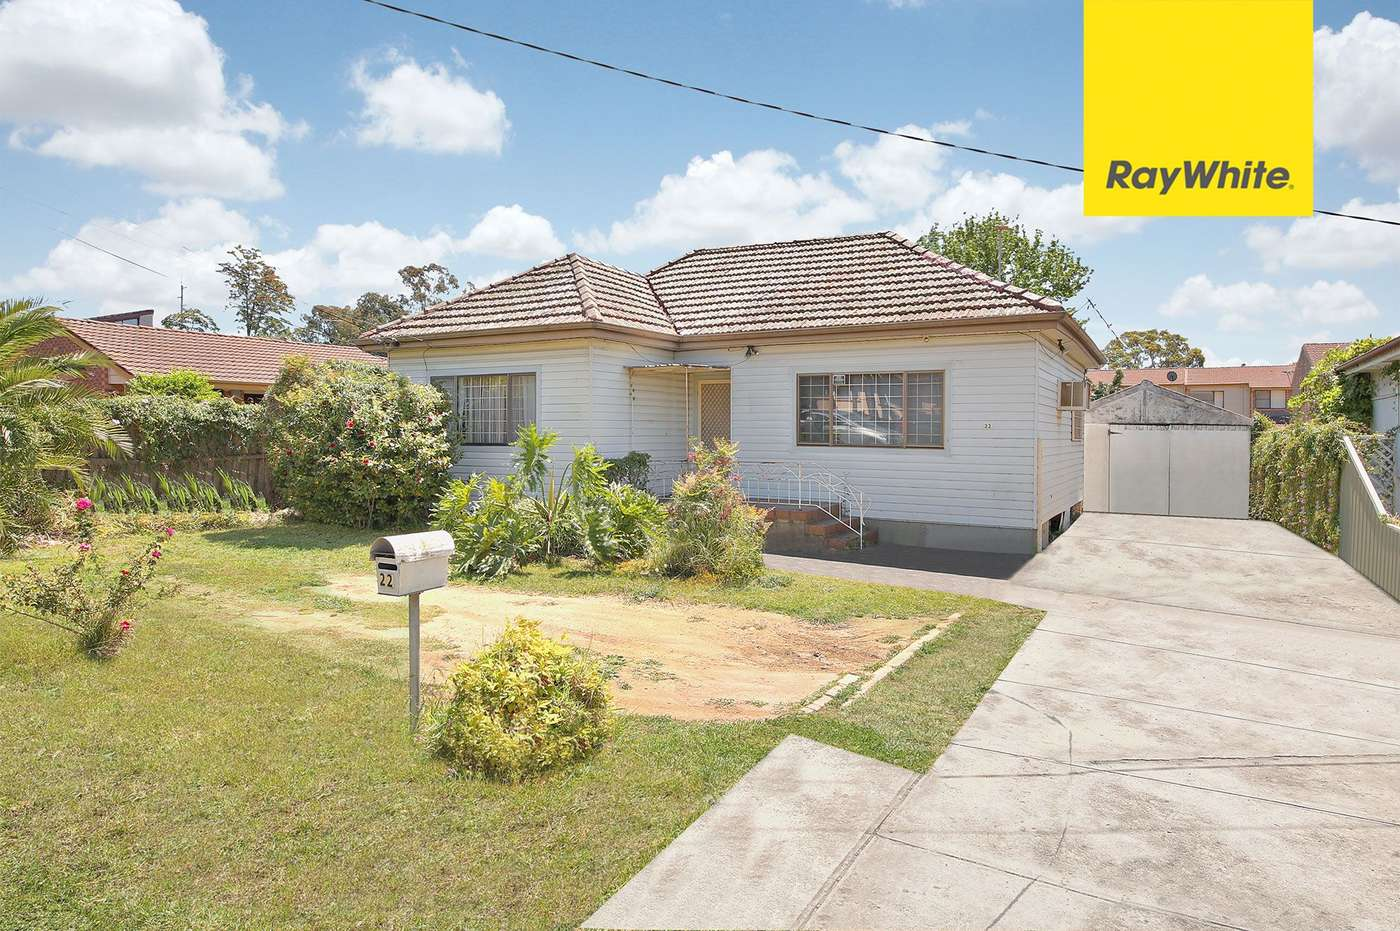 Main view of Homely house listing, 22 Brunker Road, Yagoona, NSW 2199